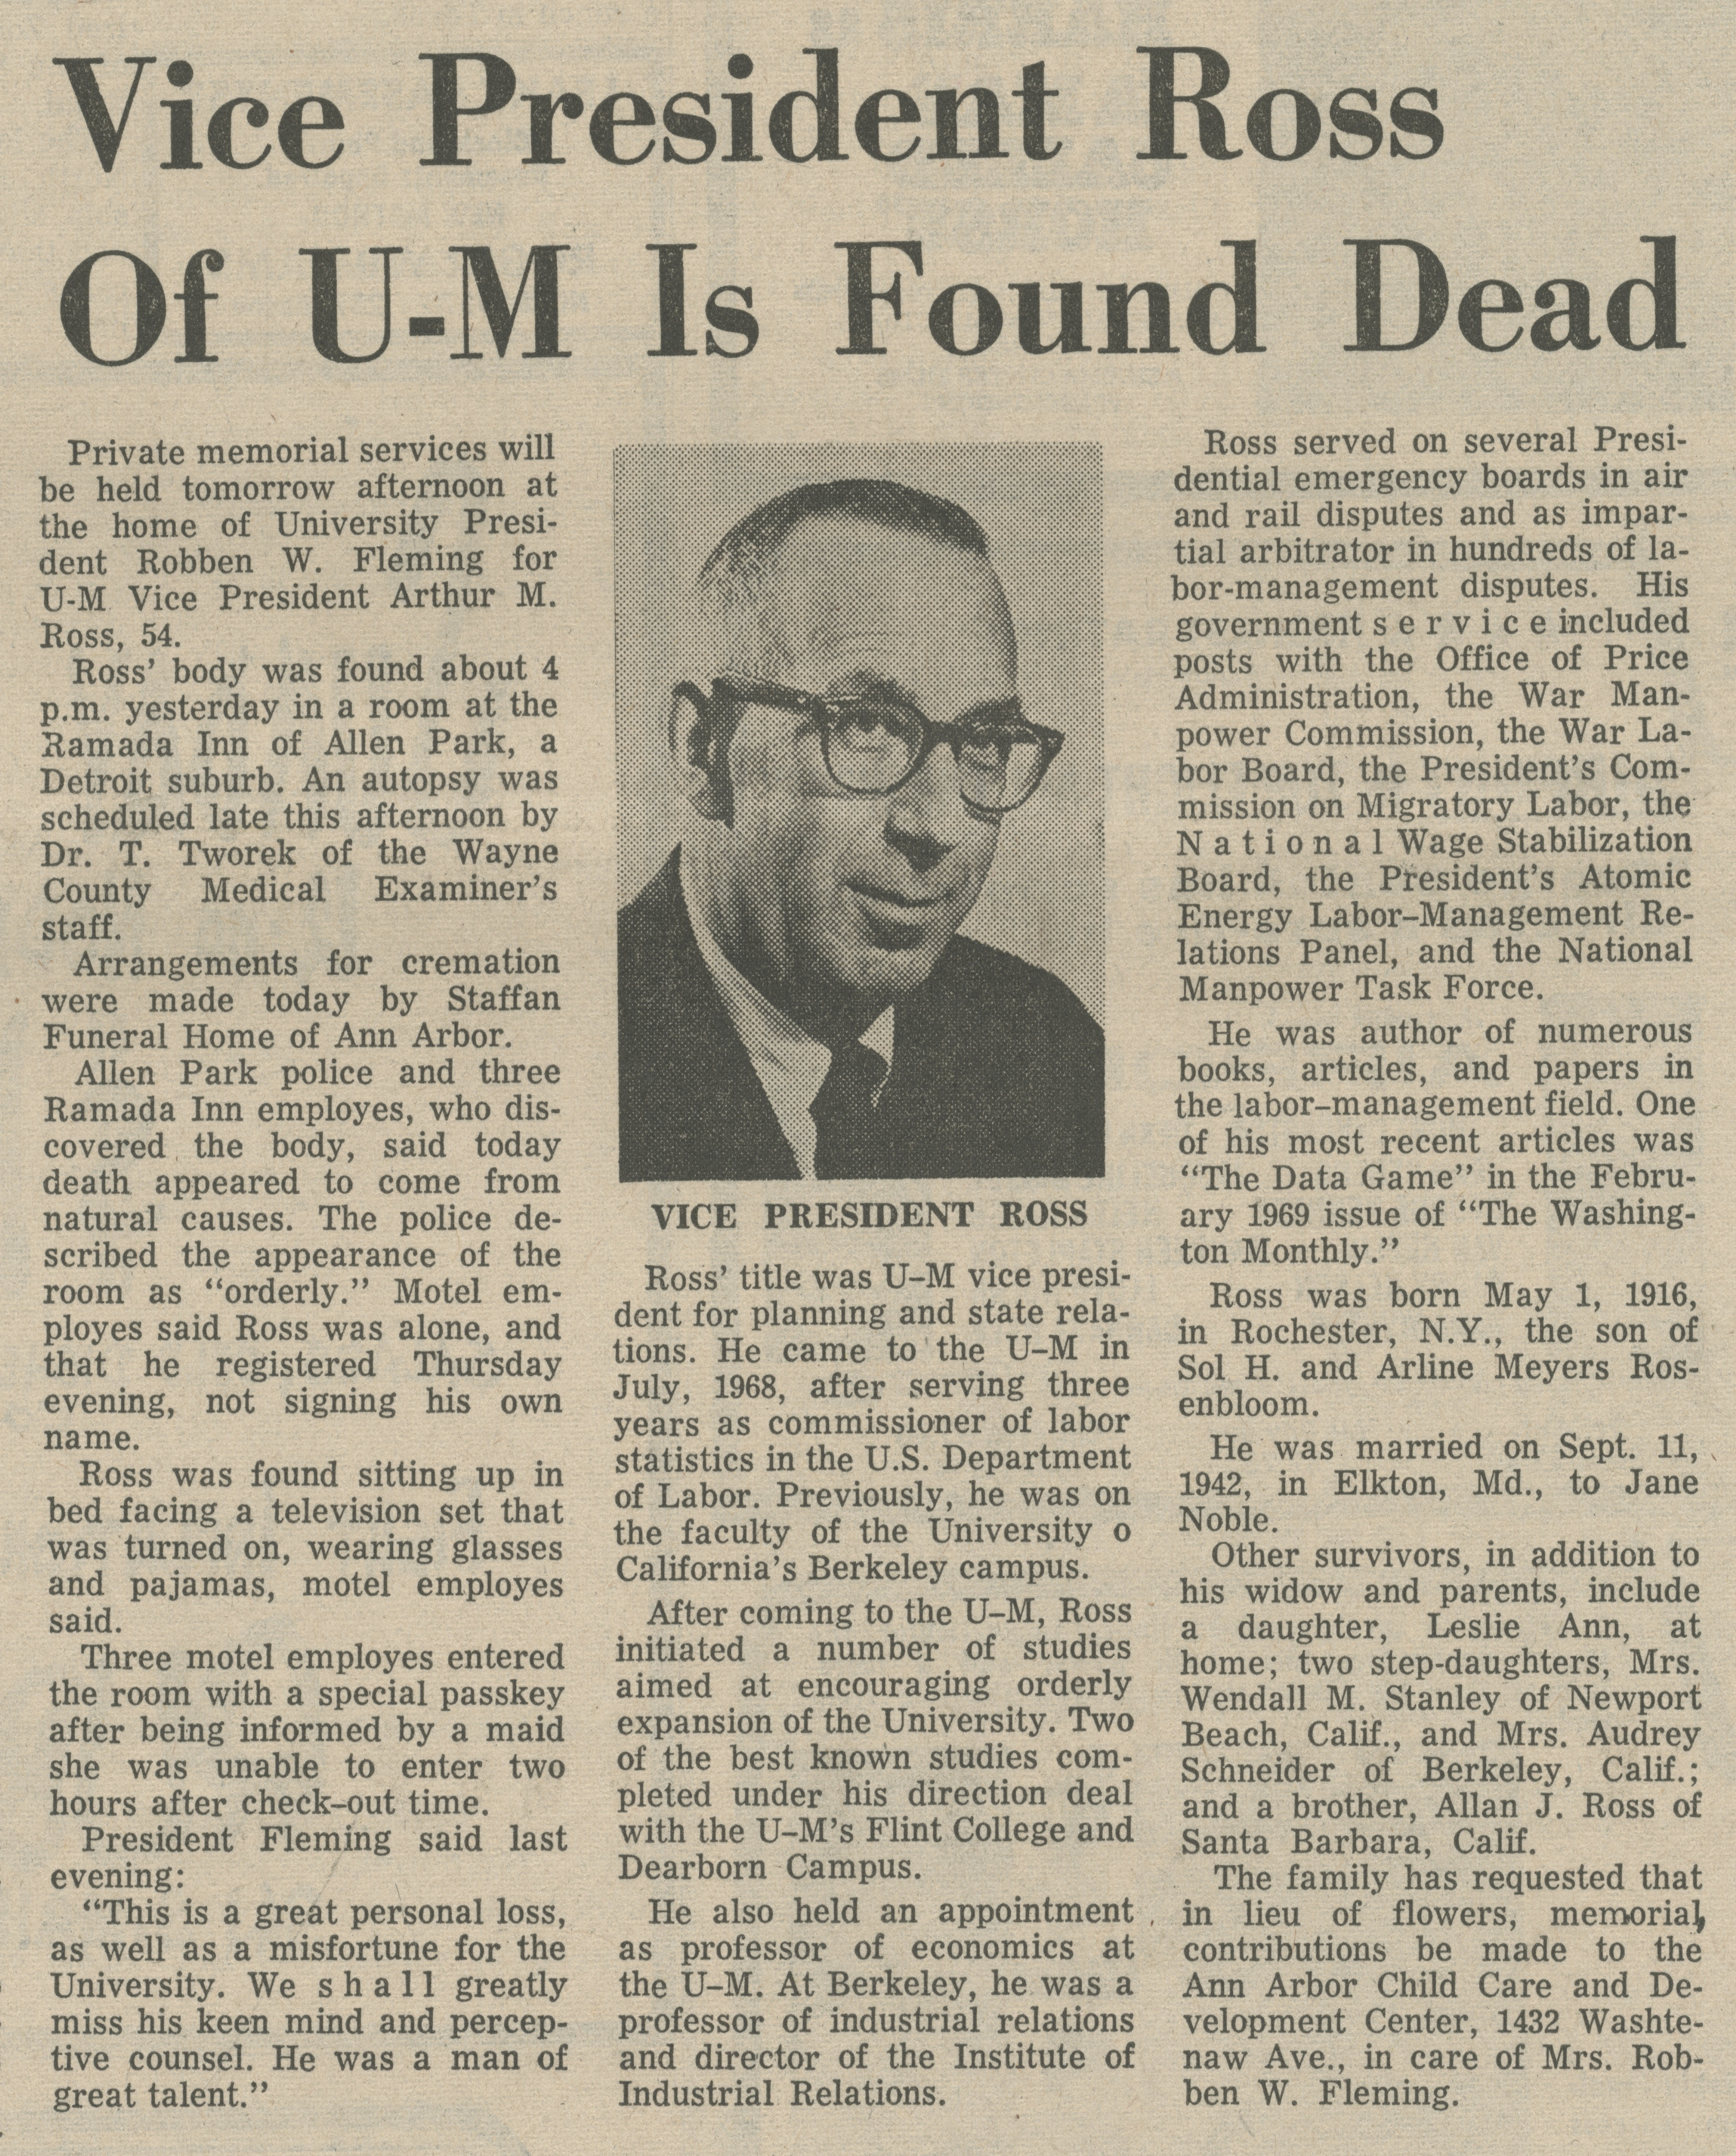 Vice President Ross Of U-M Is Found Dead image